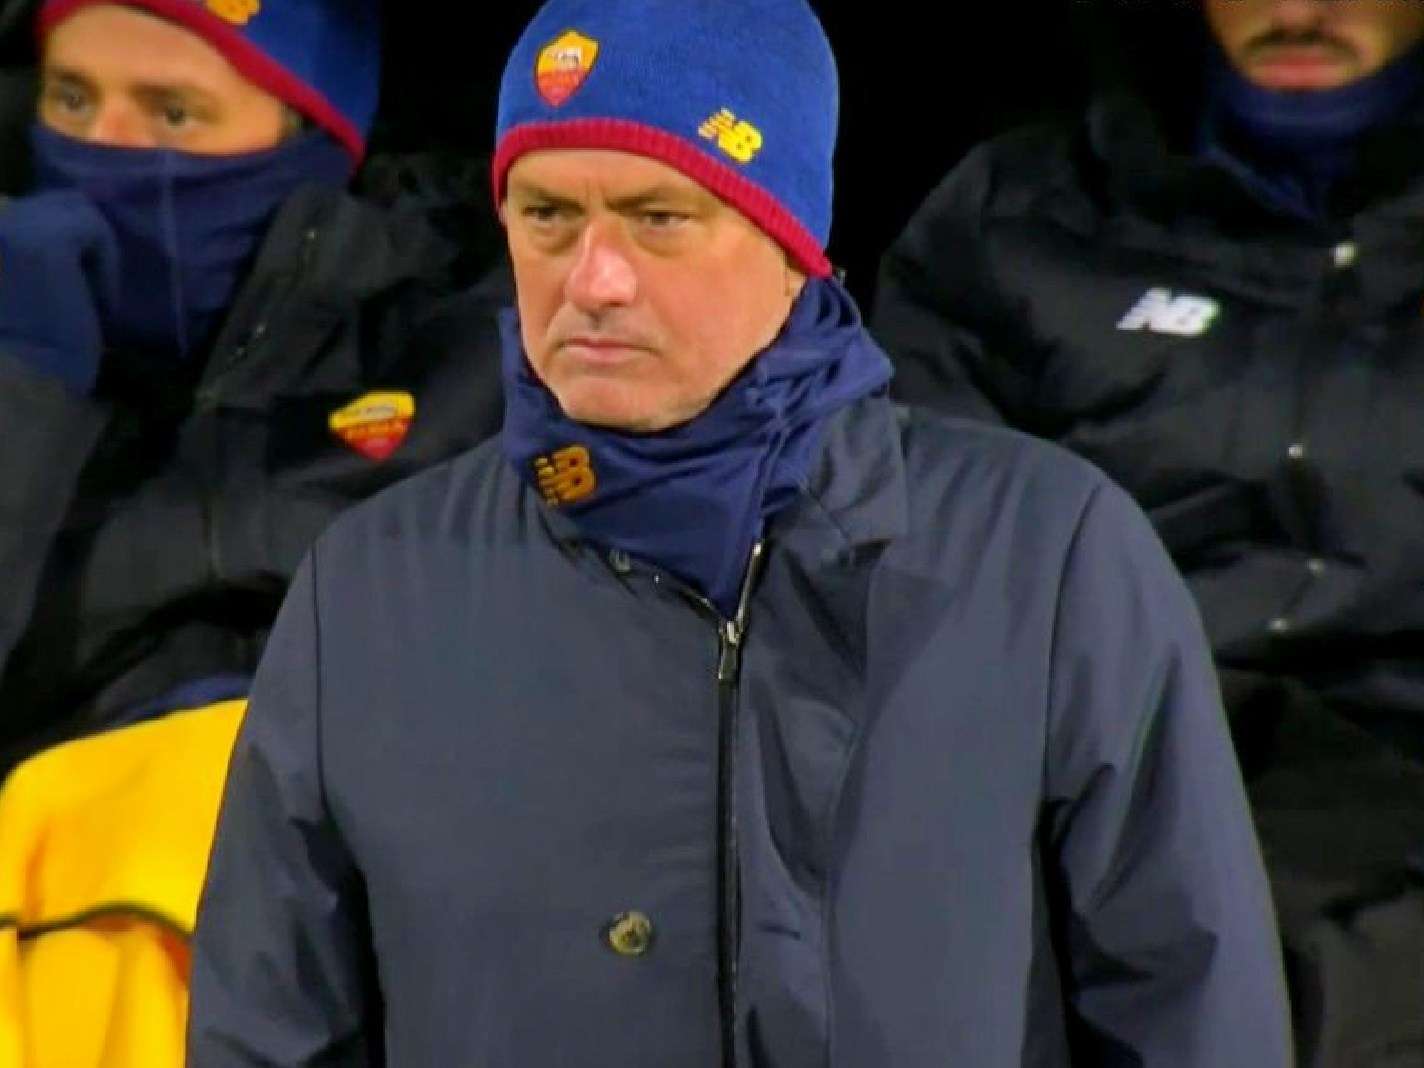 Jose Mourinho looking weary as AS Roma get dismantled 6-1 by Bodo_Glimt